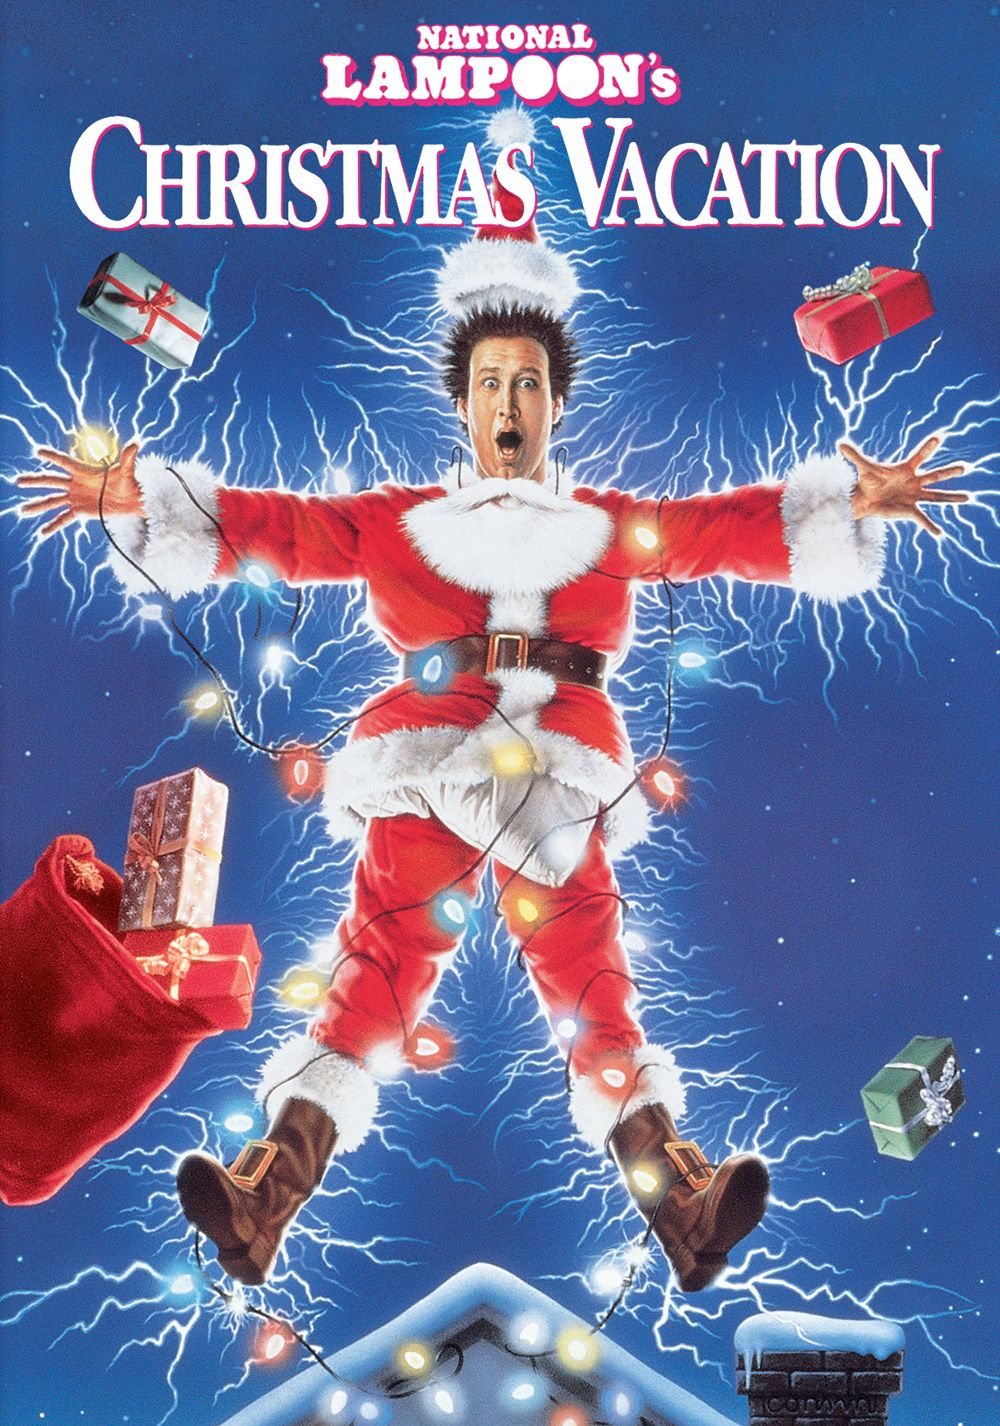 Iphone Wallpapers National Lampoon S Christmas Vacation Wallpaper For I National Lampoons Christmas Vacation Movie Kids Christmas Movies Best Christmas Movies